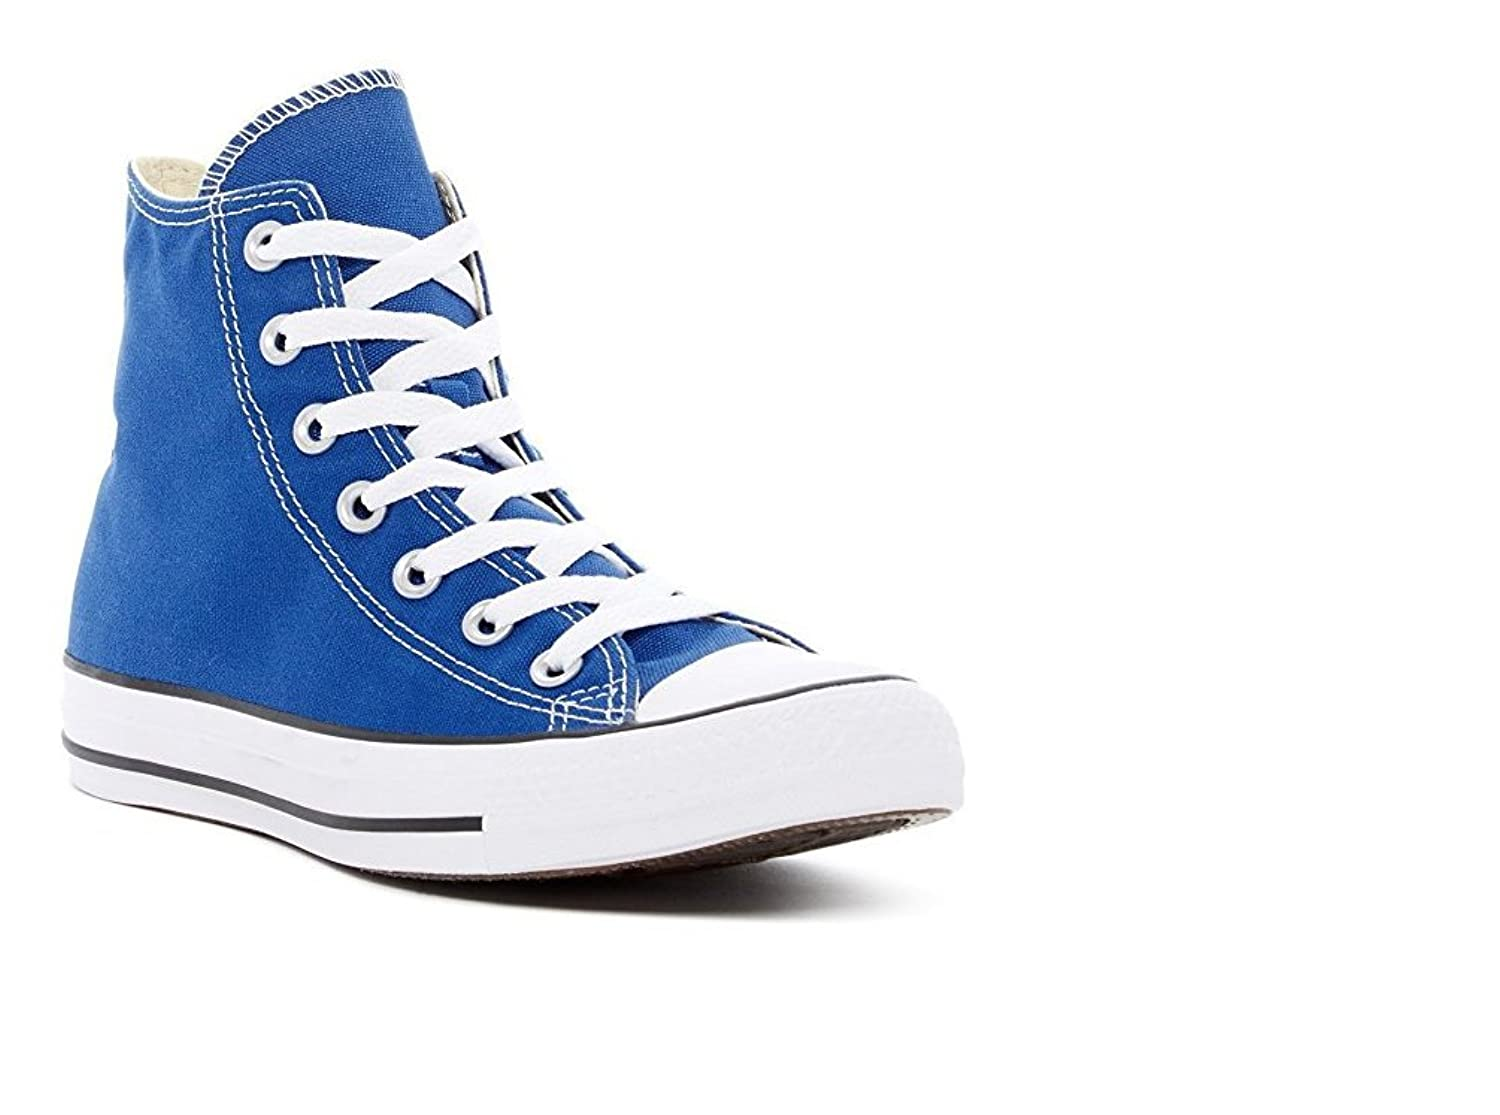 ed388ee849b6 Converse Chuck Taylor All Star Unisex Hi-Top Casual Shoe (Dazzling Blue